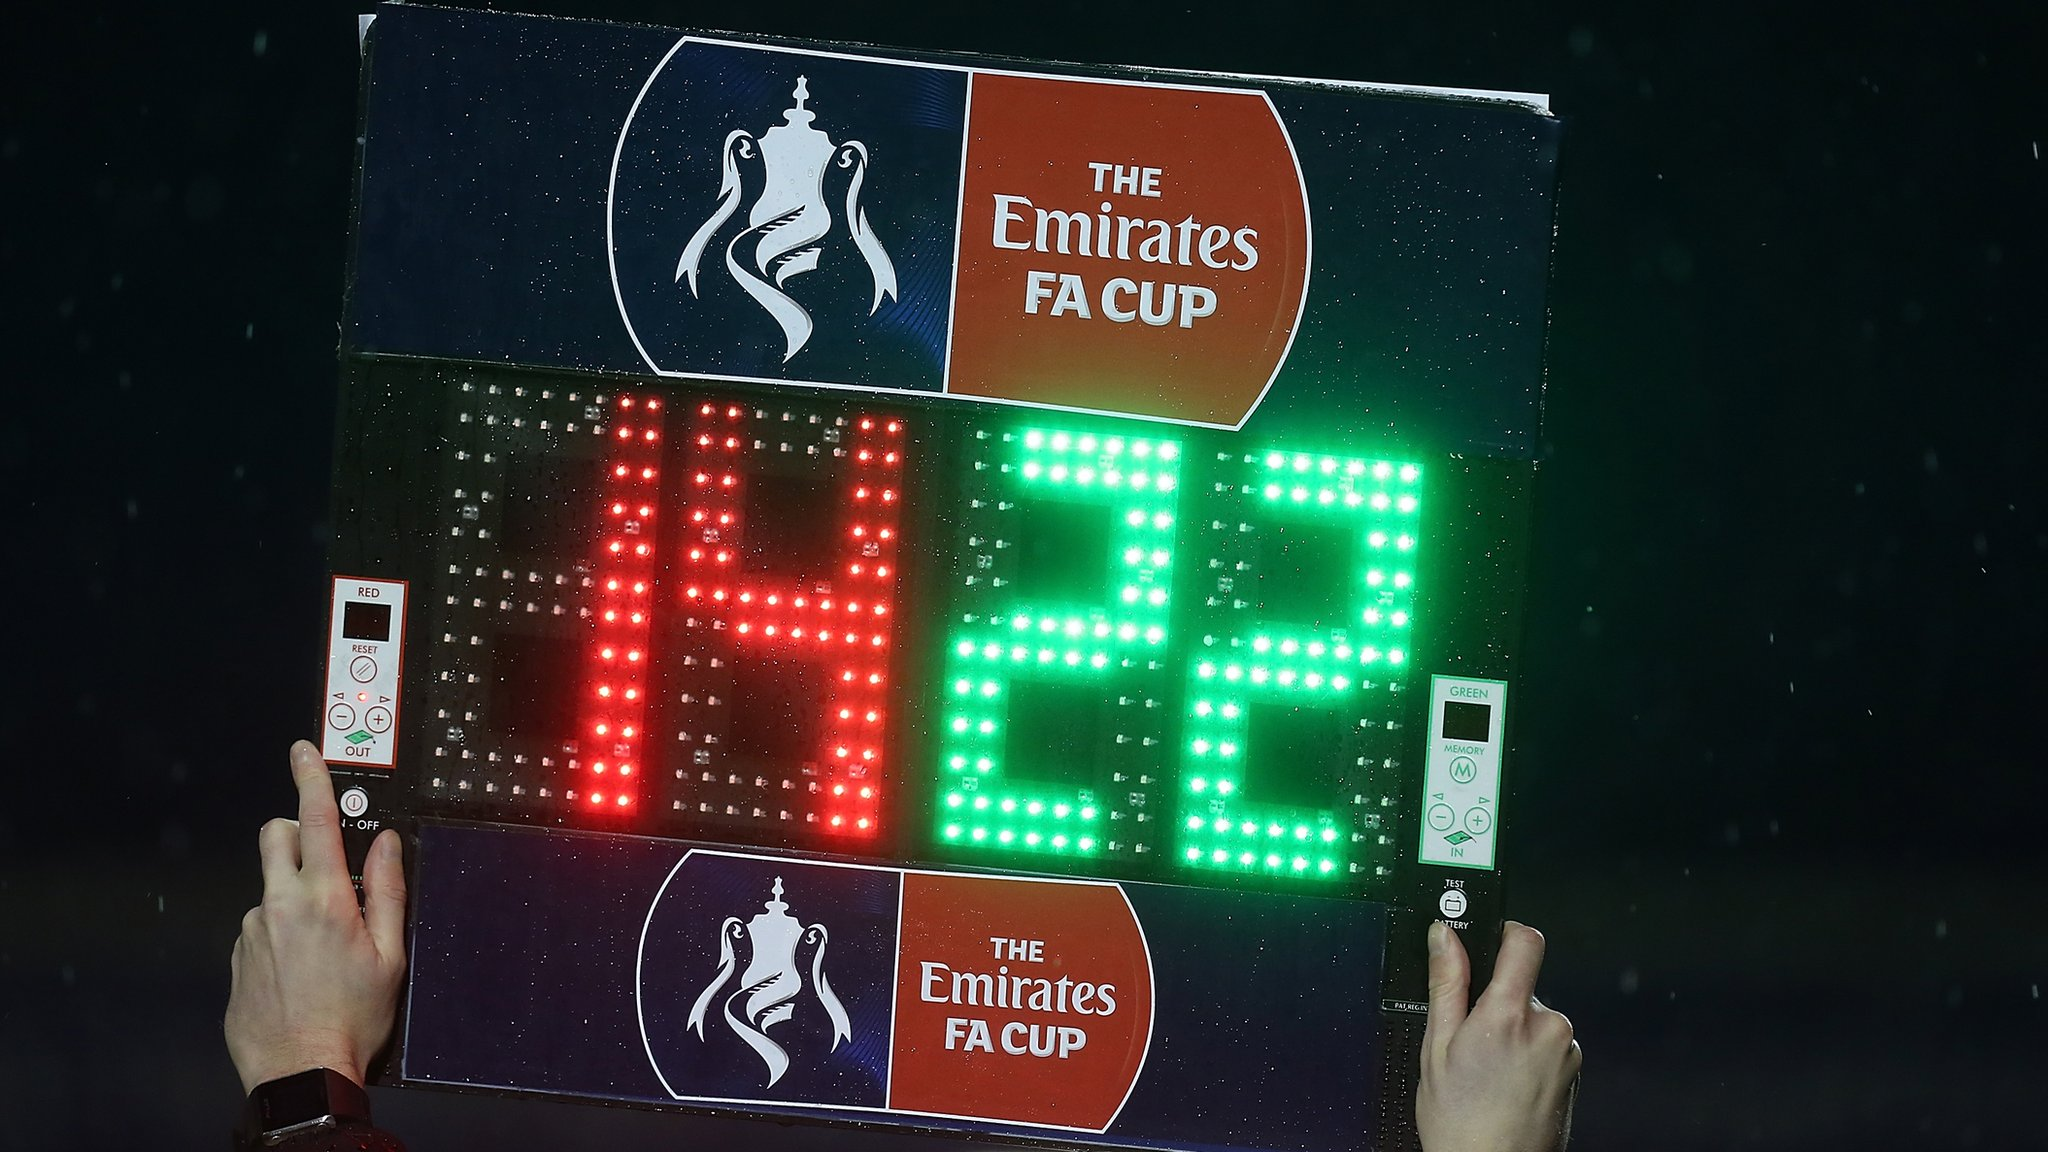 FA Cup: Fourth substitute to be allowed in latter stages of competition